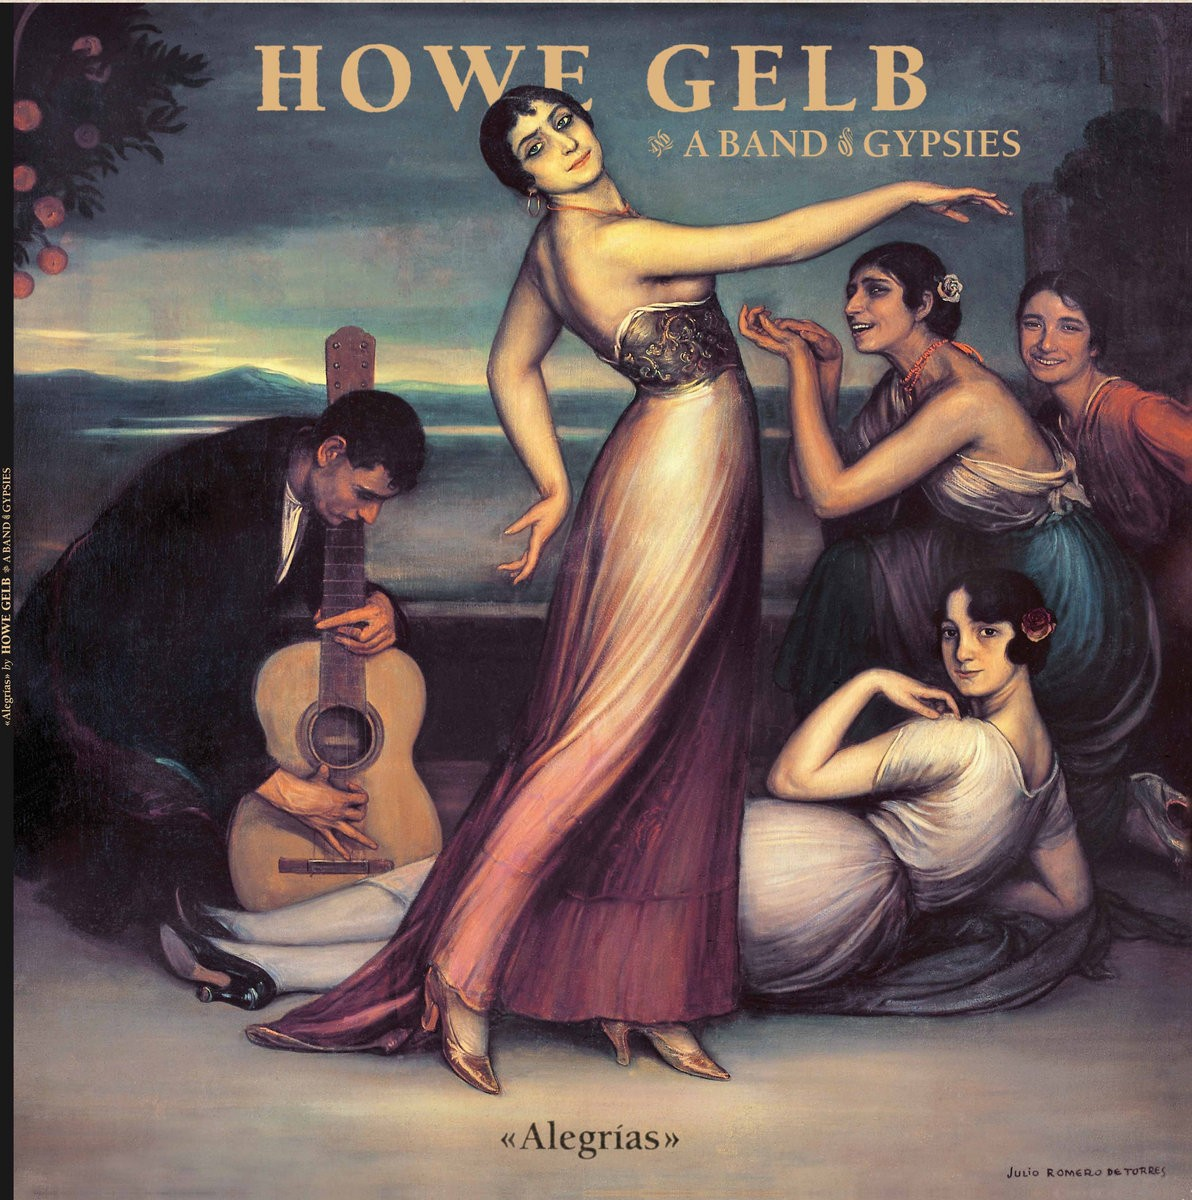 Howe Gelb And A Band of Gypsies - Alegrias